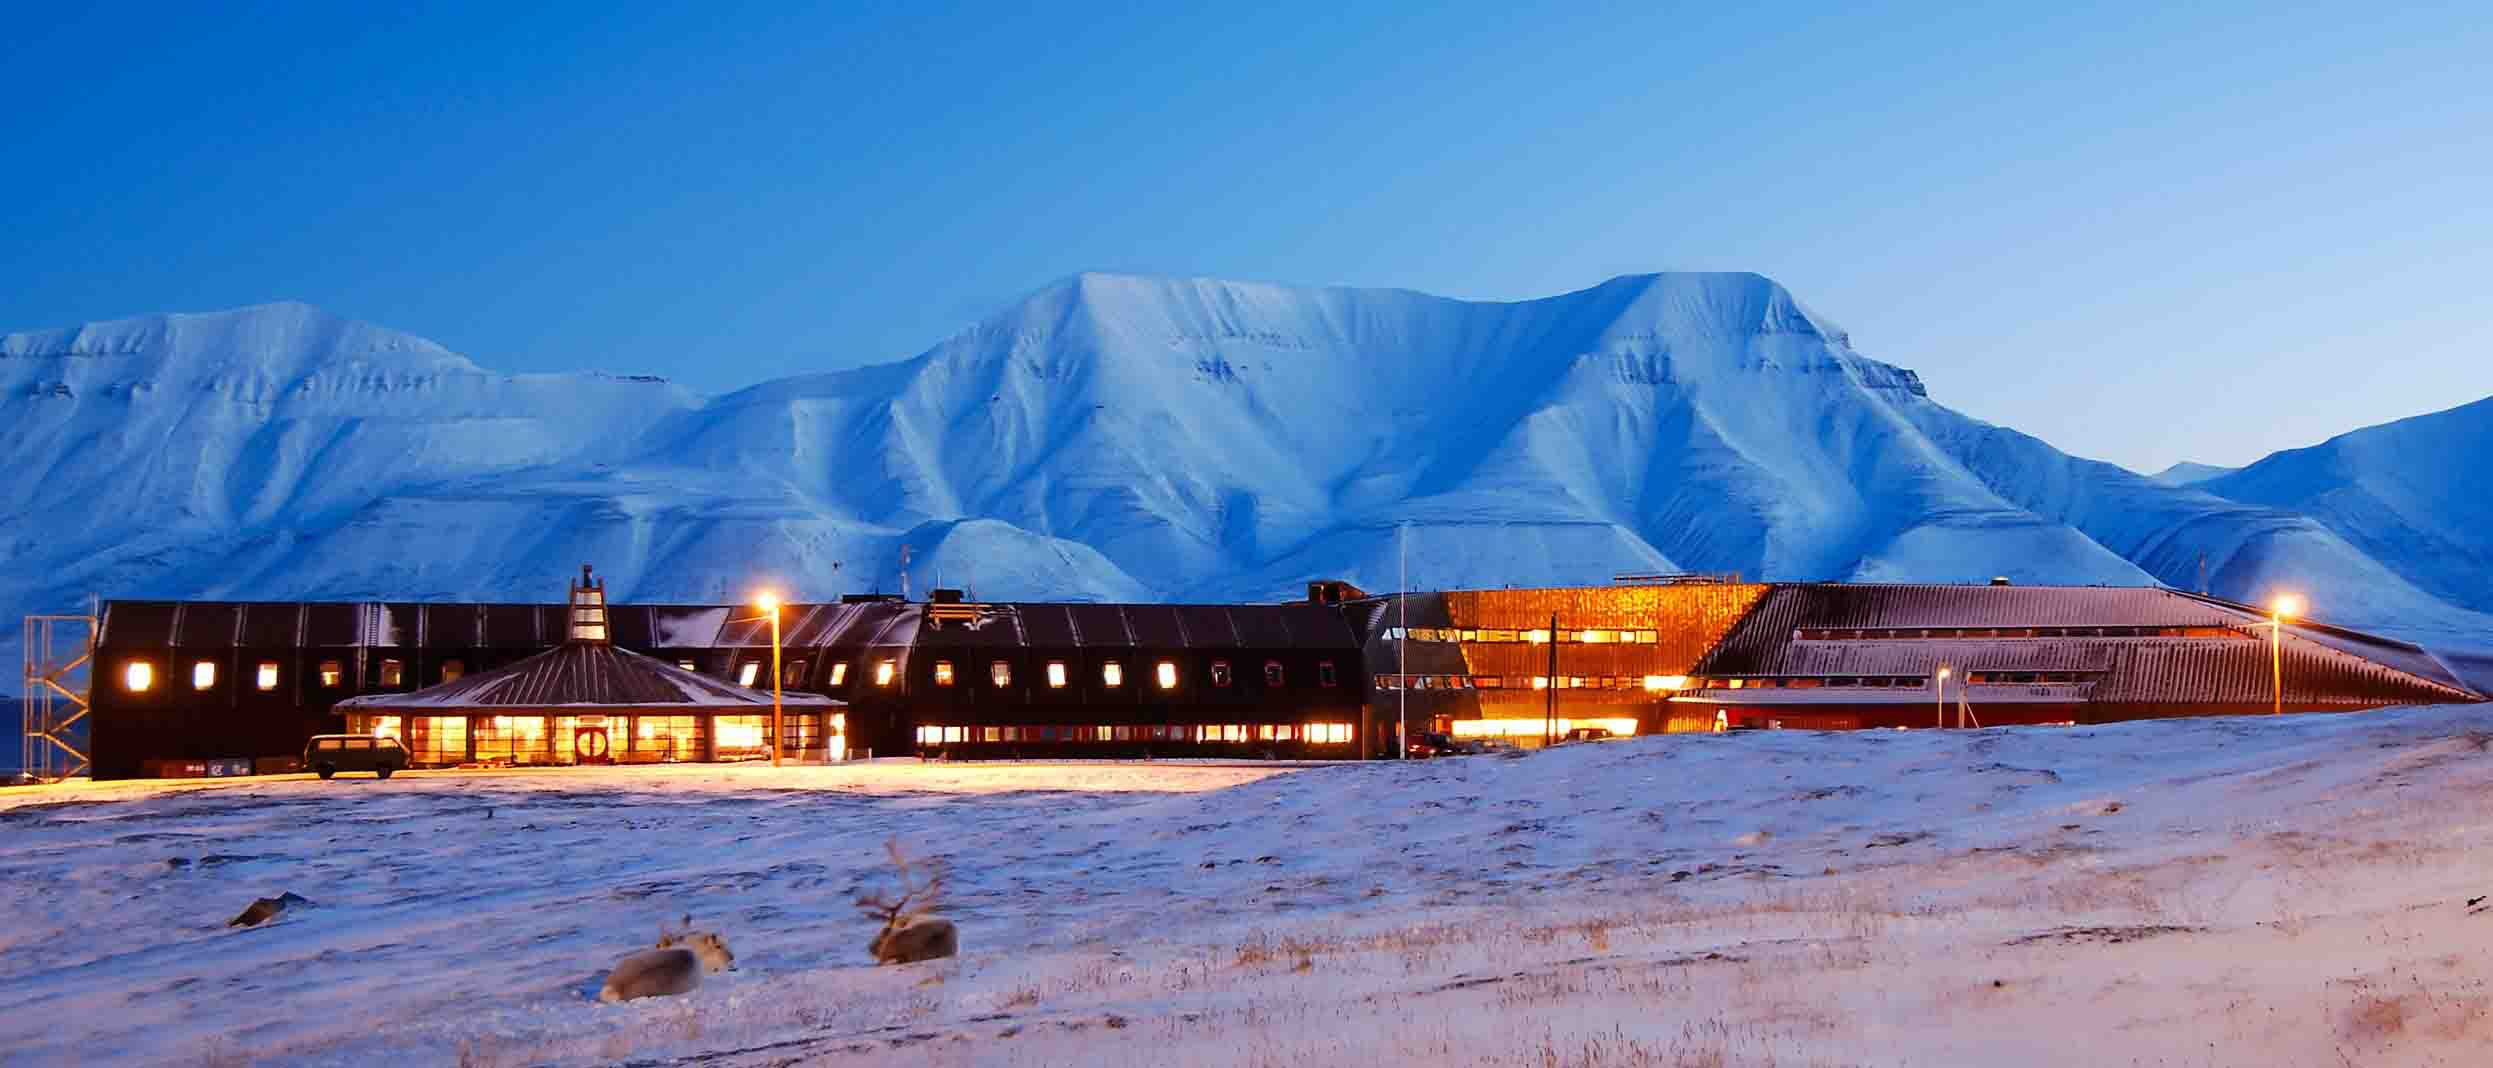 Svalbard Science Center (3)